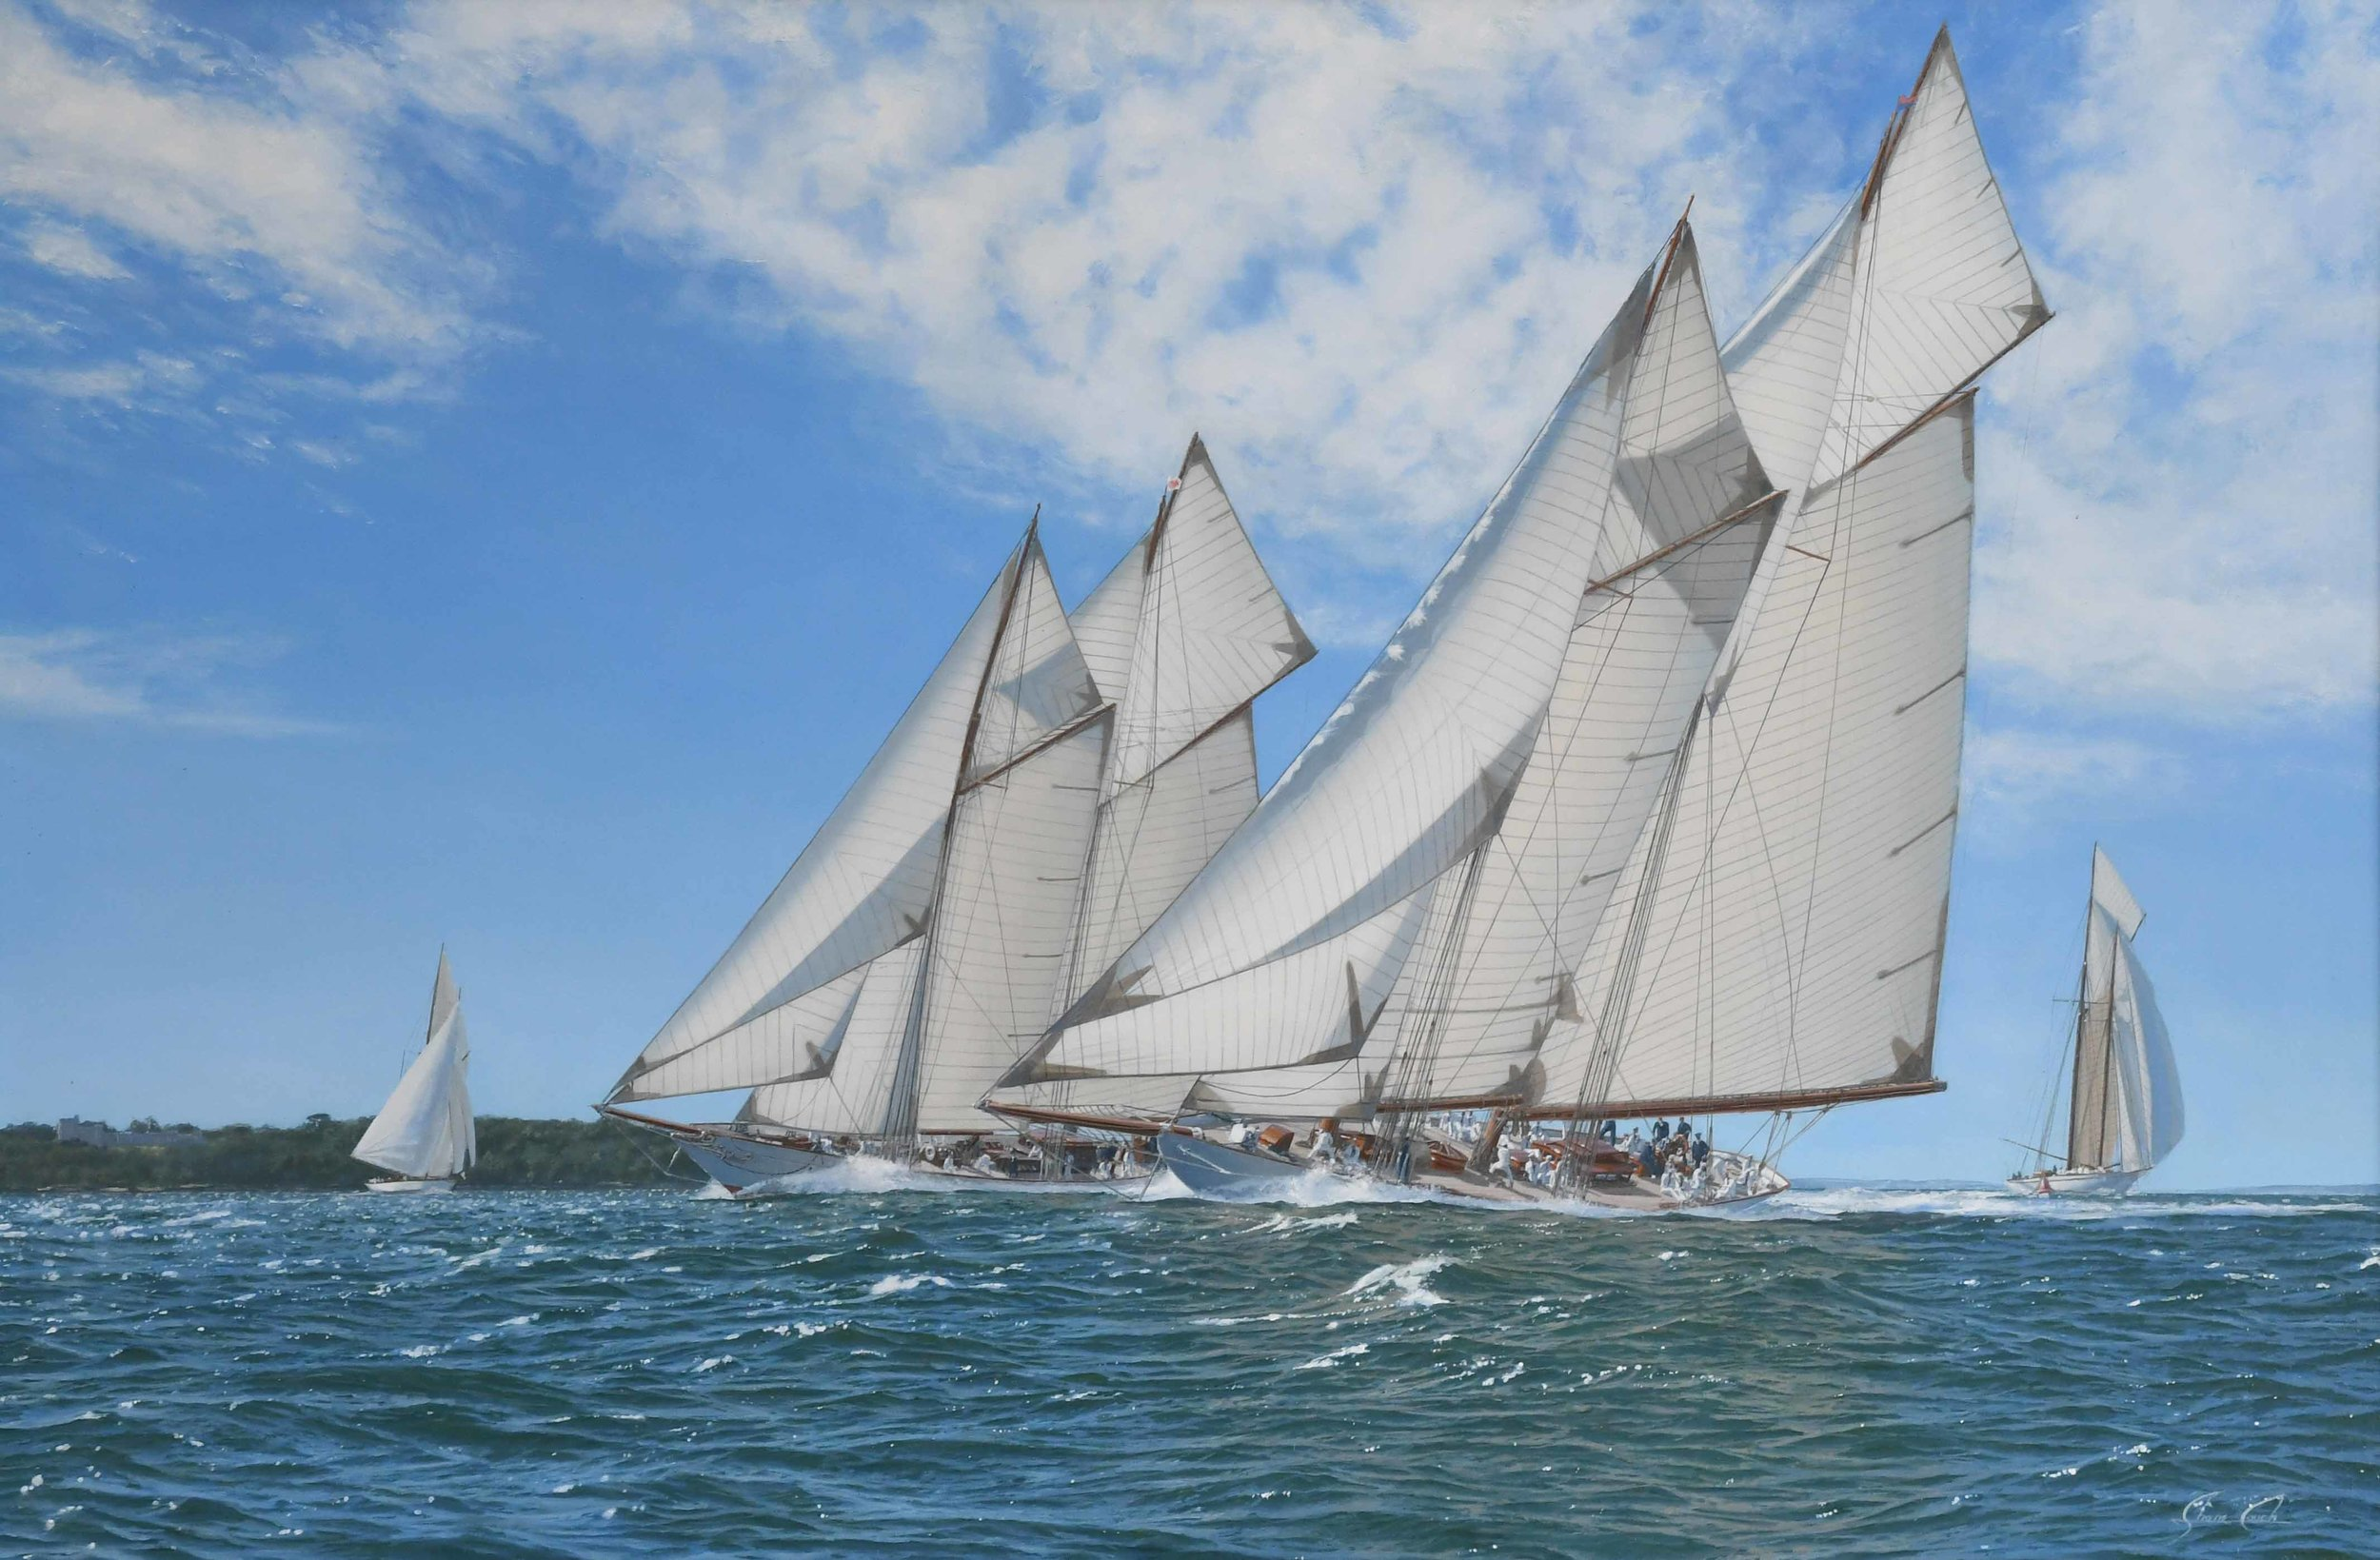 Ingomar vs Meteor 3 Cowes 1904 (Click Image above for historic background)